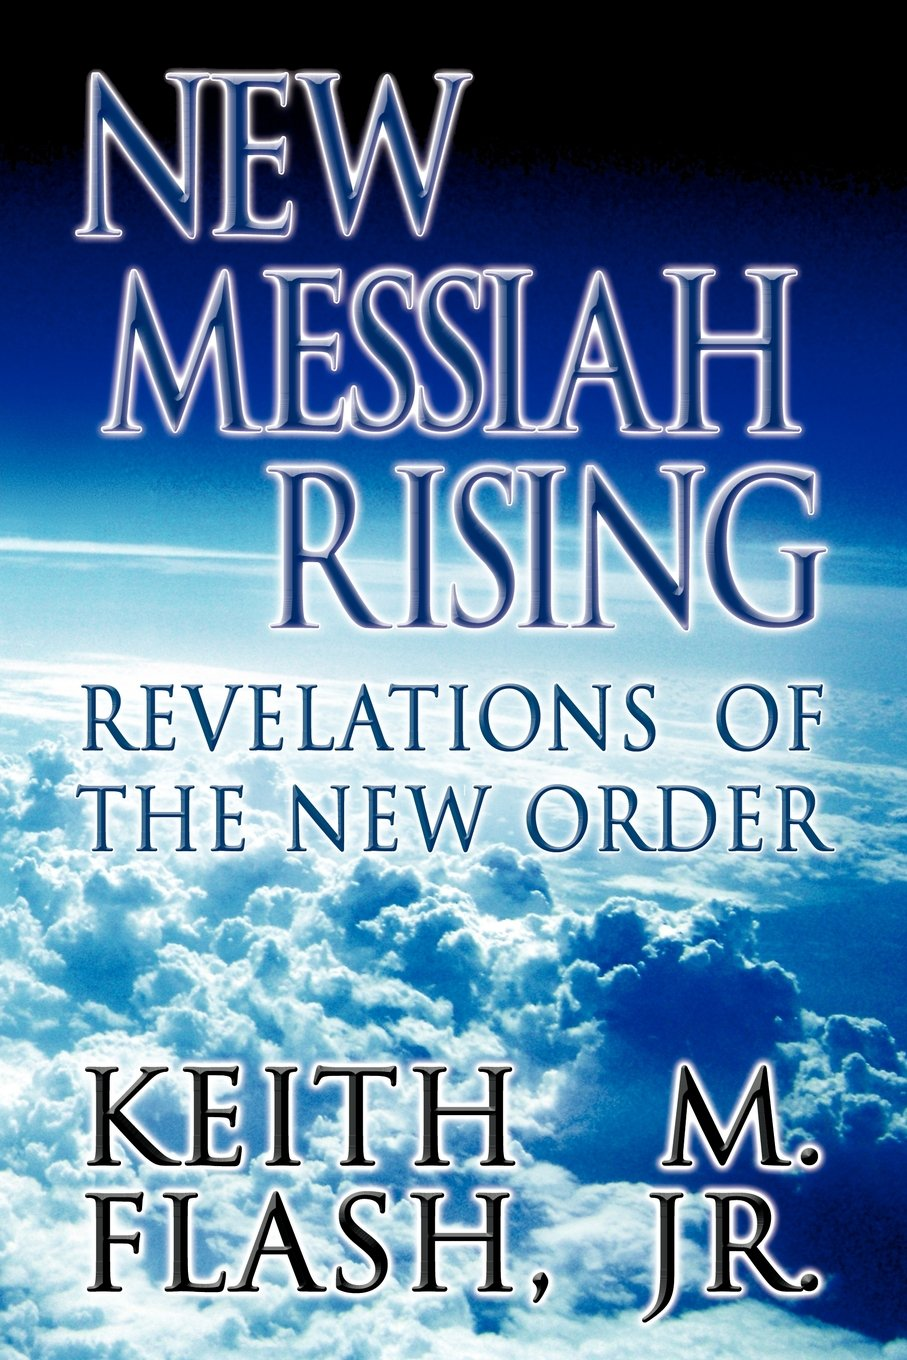 New Messiah Rising_Revelations of the New Order